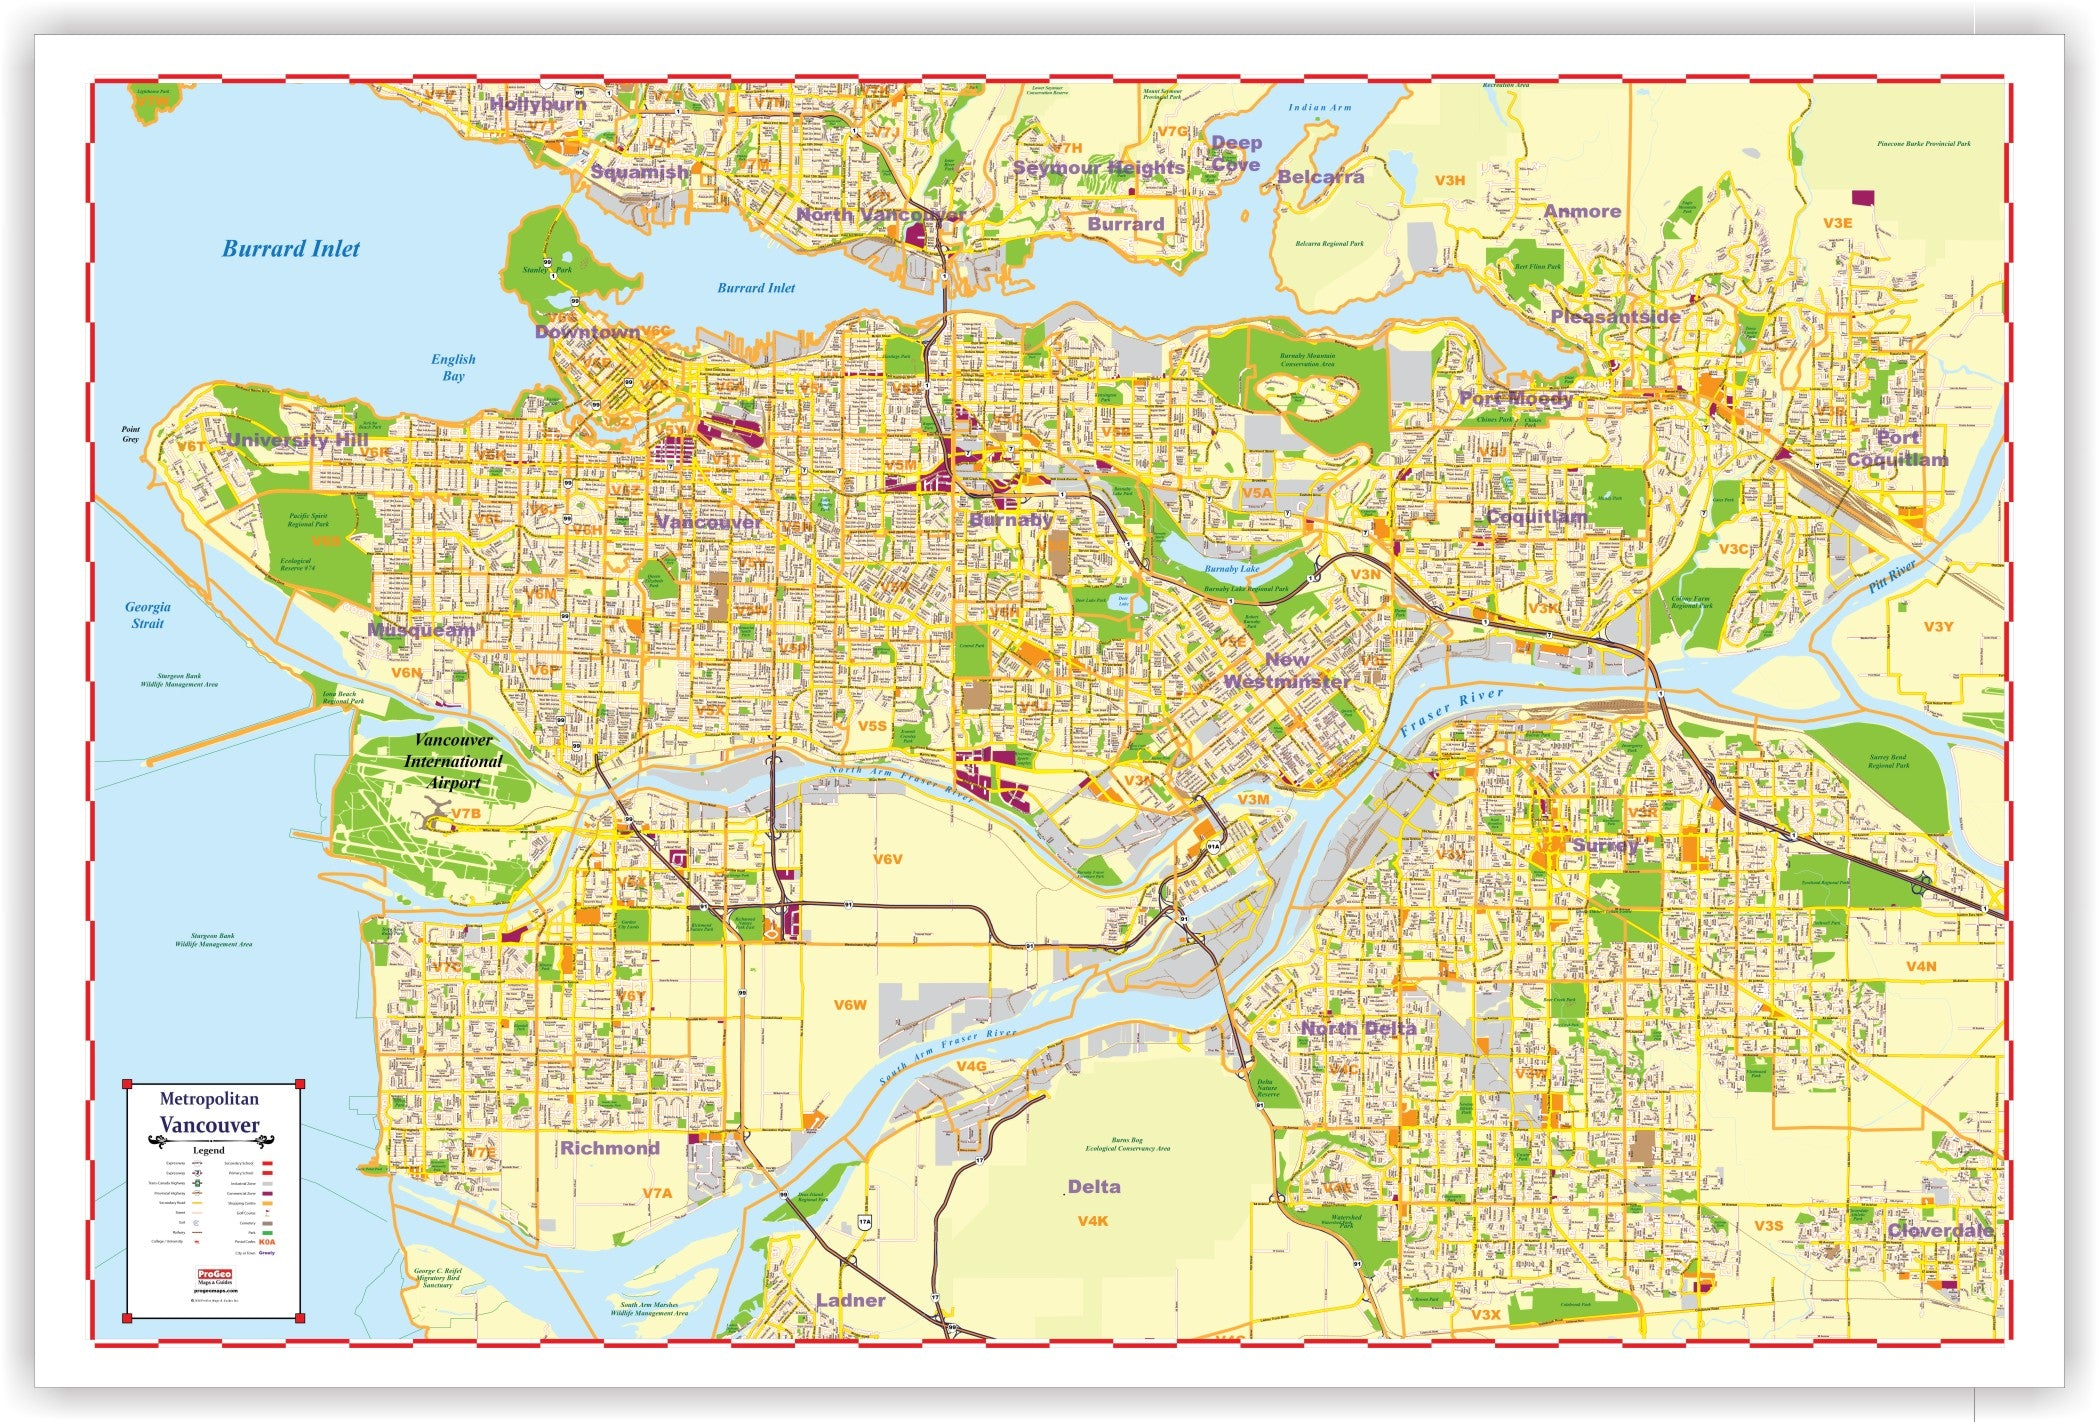 Progeo Metro Vancouver Marketing Map Laminated 48 X 72 With With